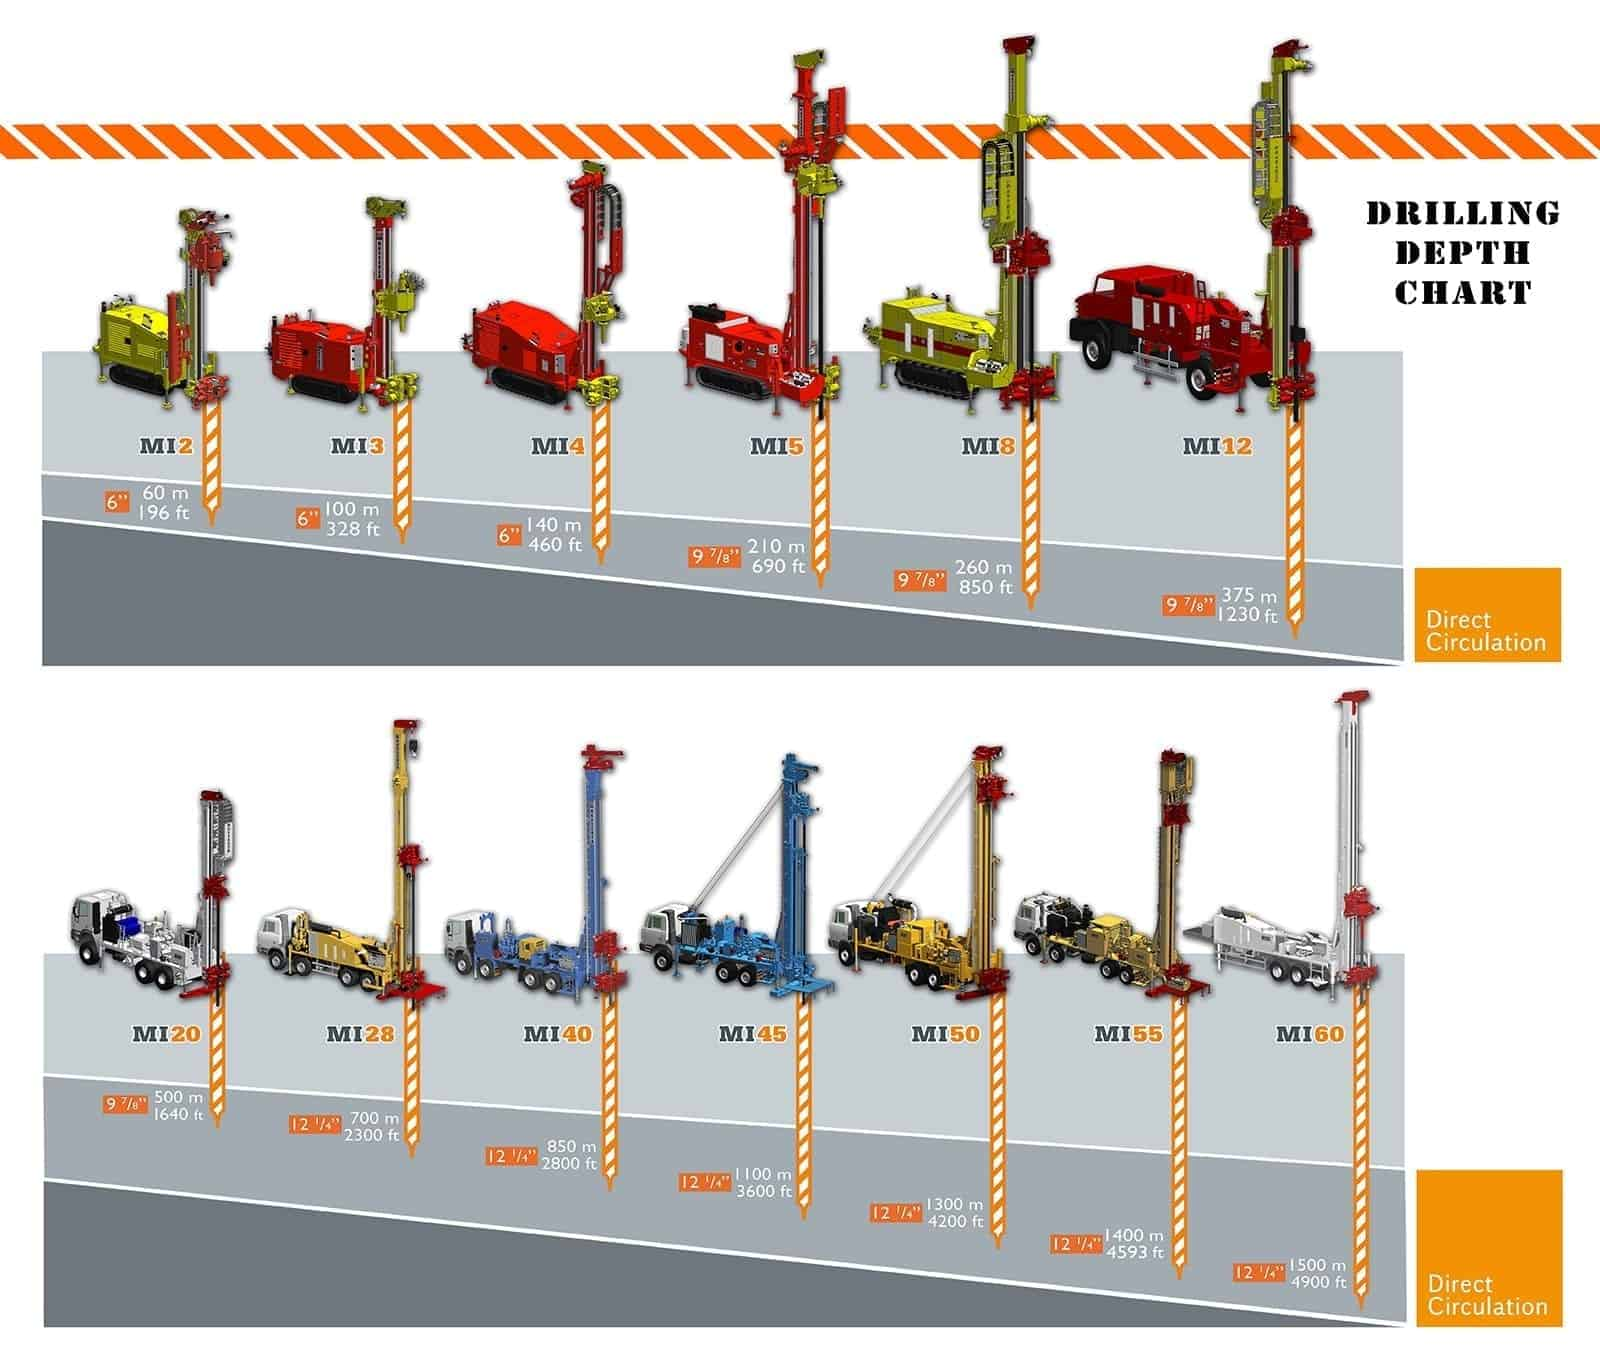 Geothermal drilling rigs